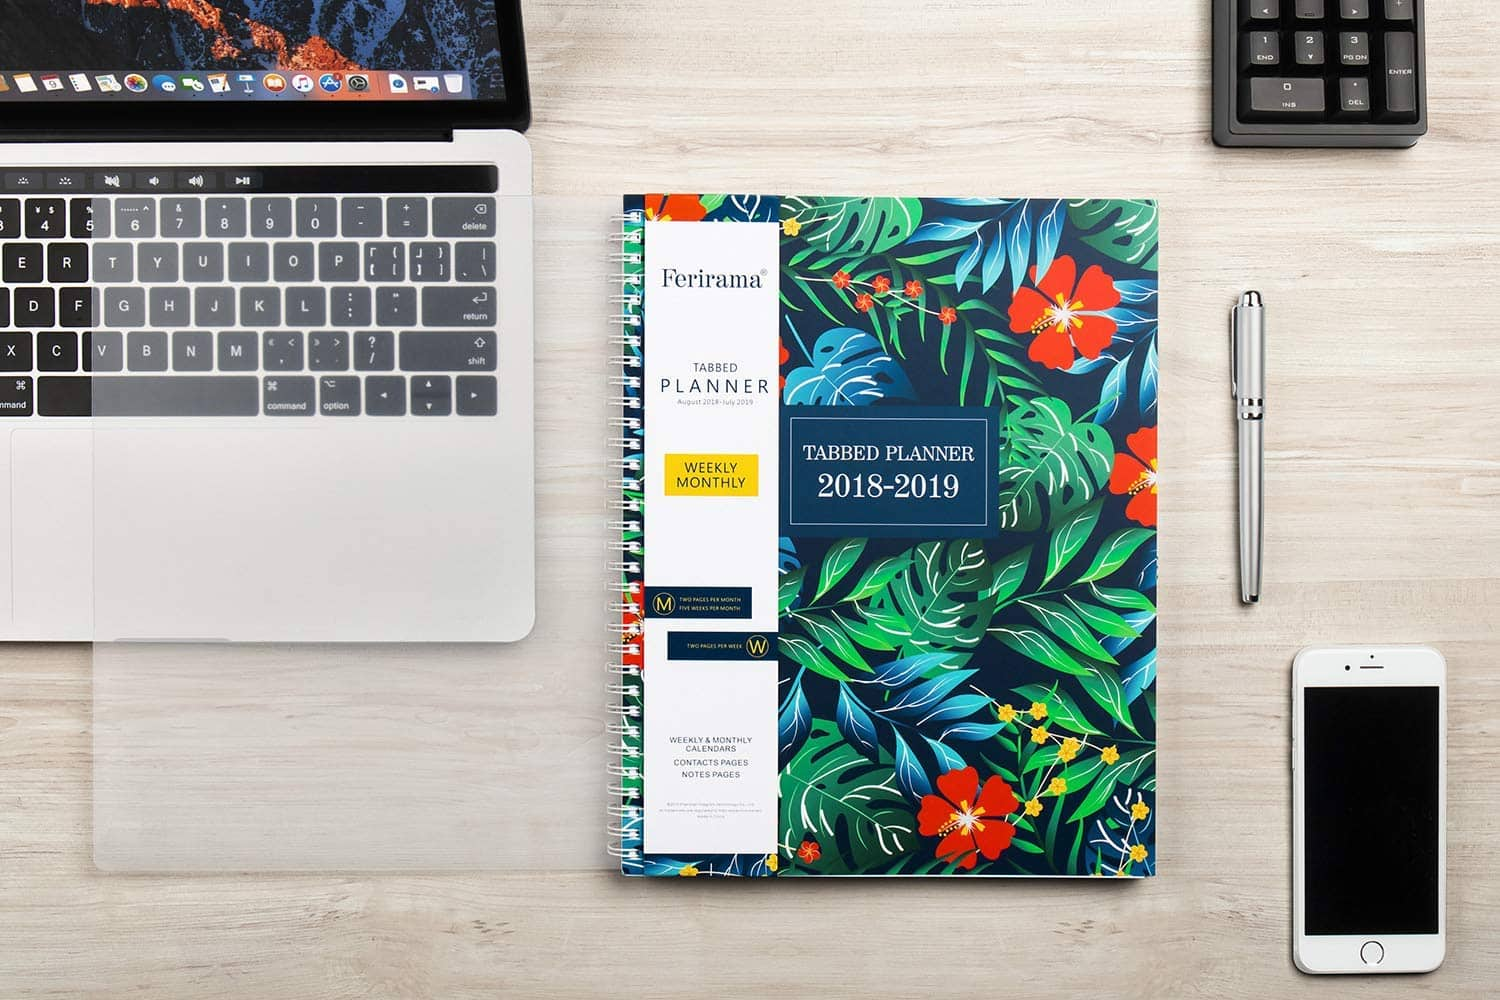 Planner 2018-2019 $6.49 + Free Shipping